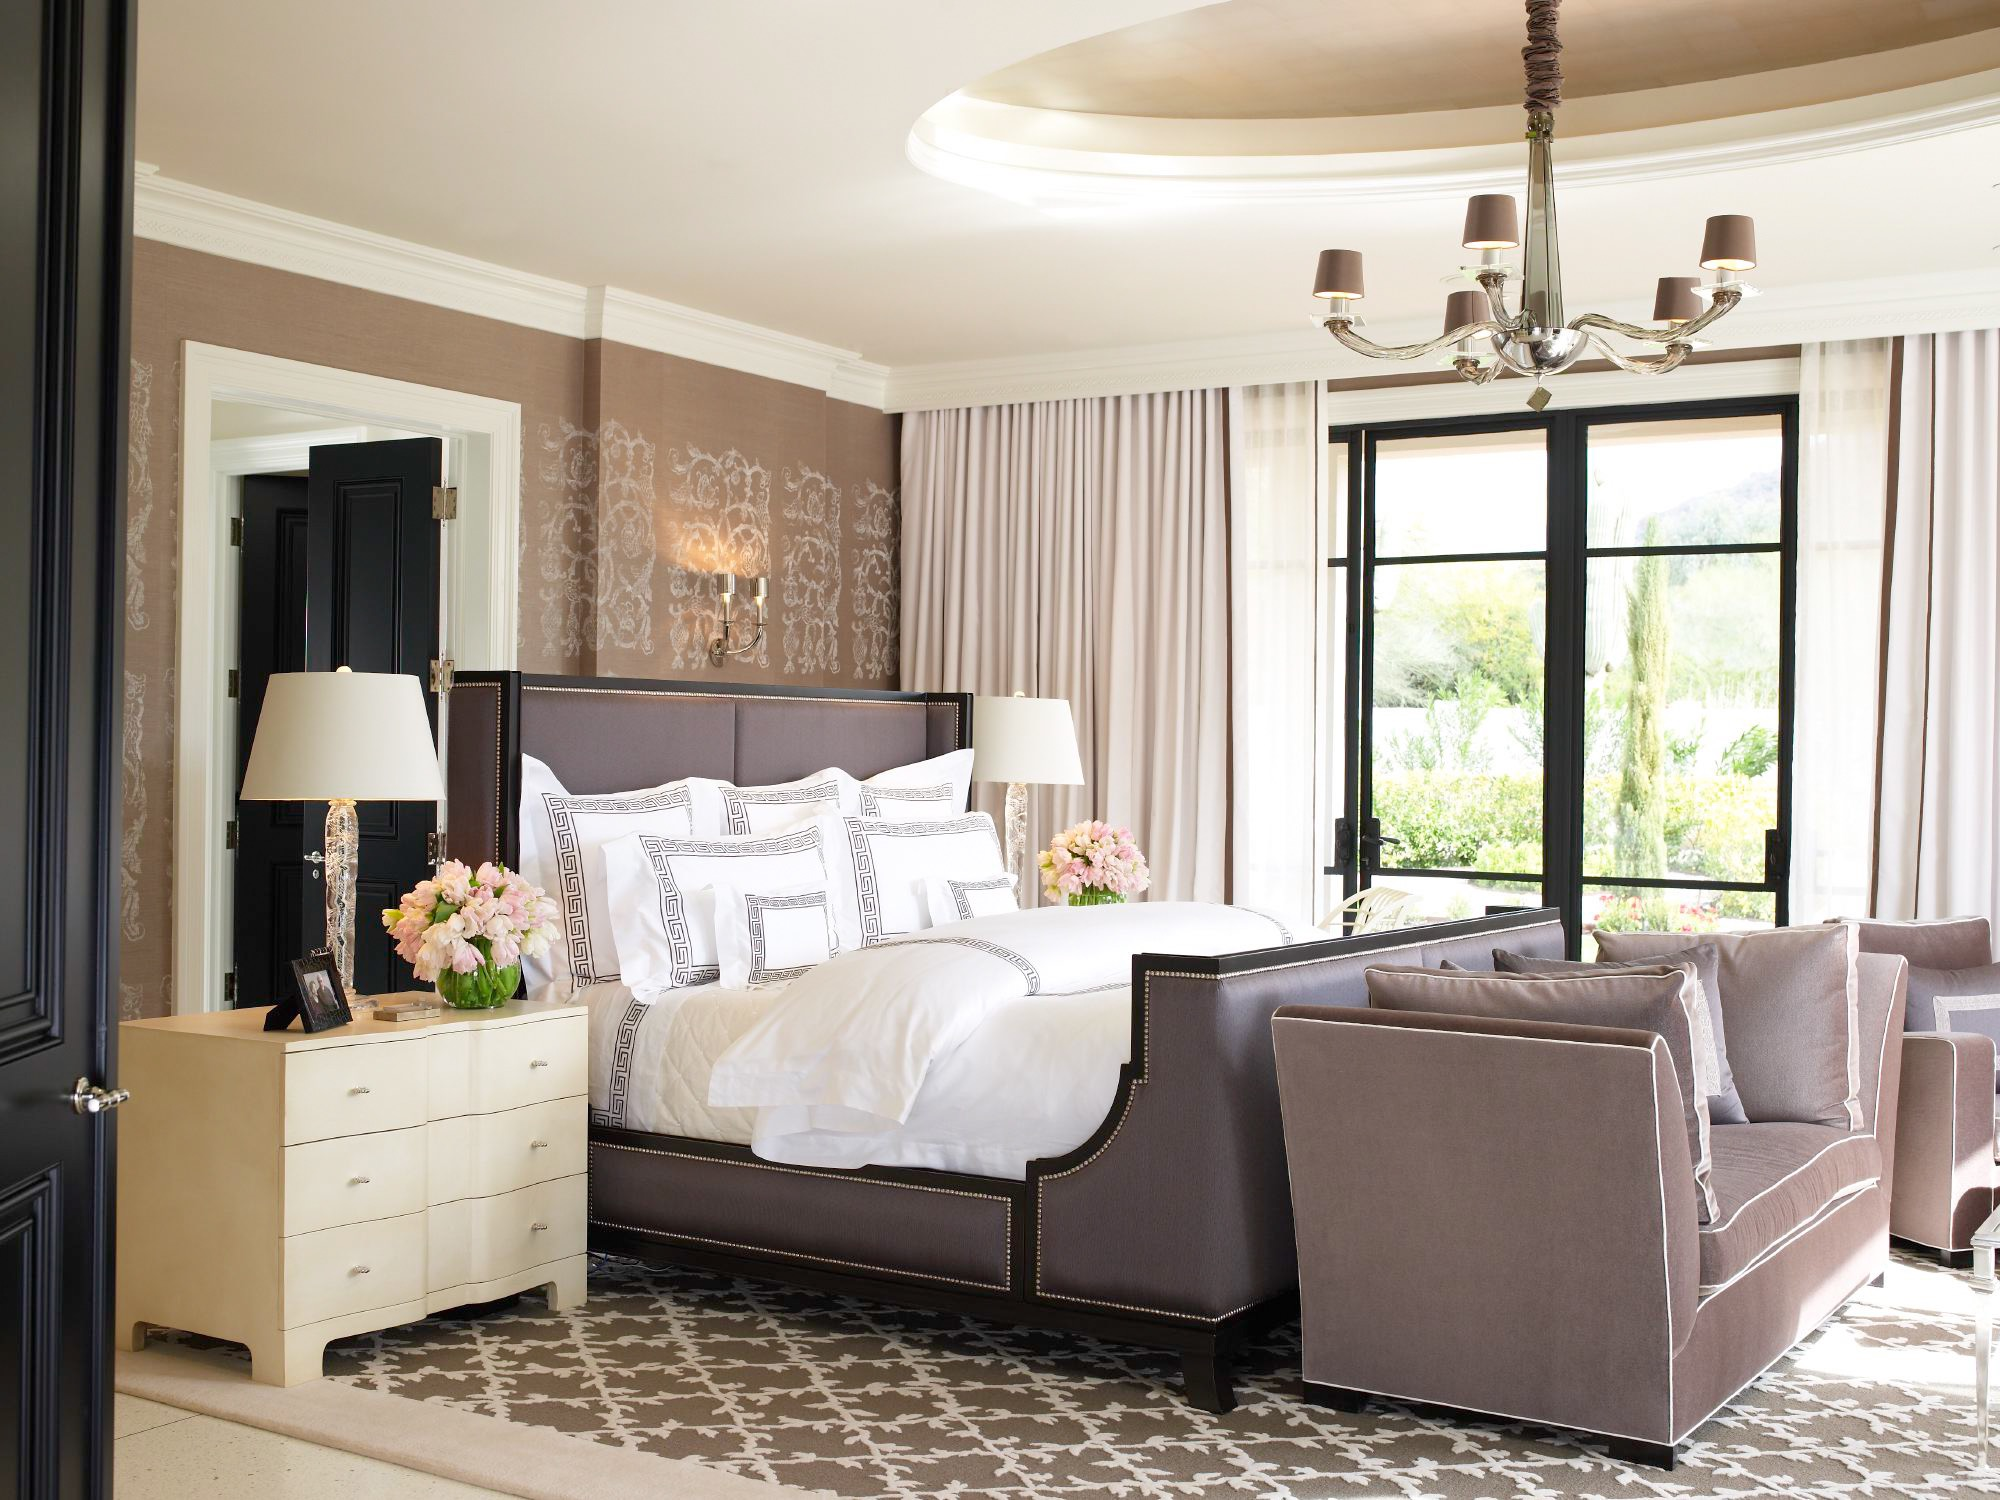 Modern Master Bedroom With Bedroom With Round Style Vaulted Ceiling (Image 18 of 32)